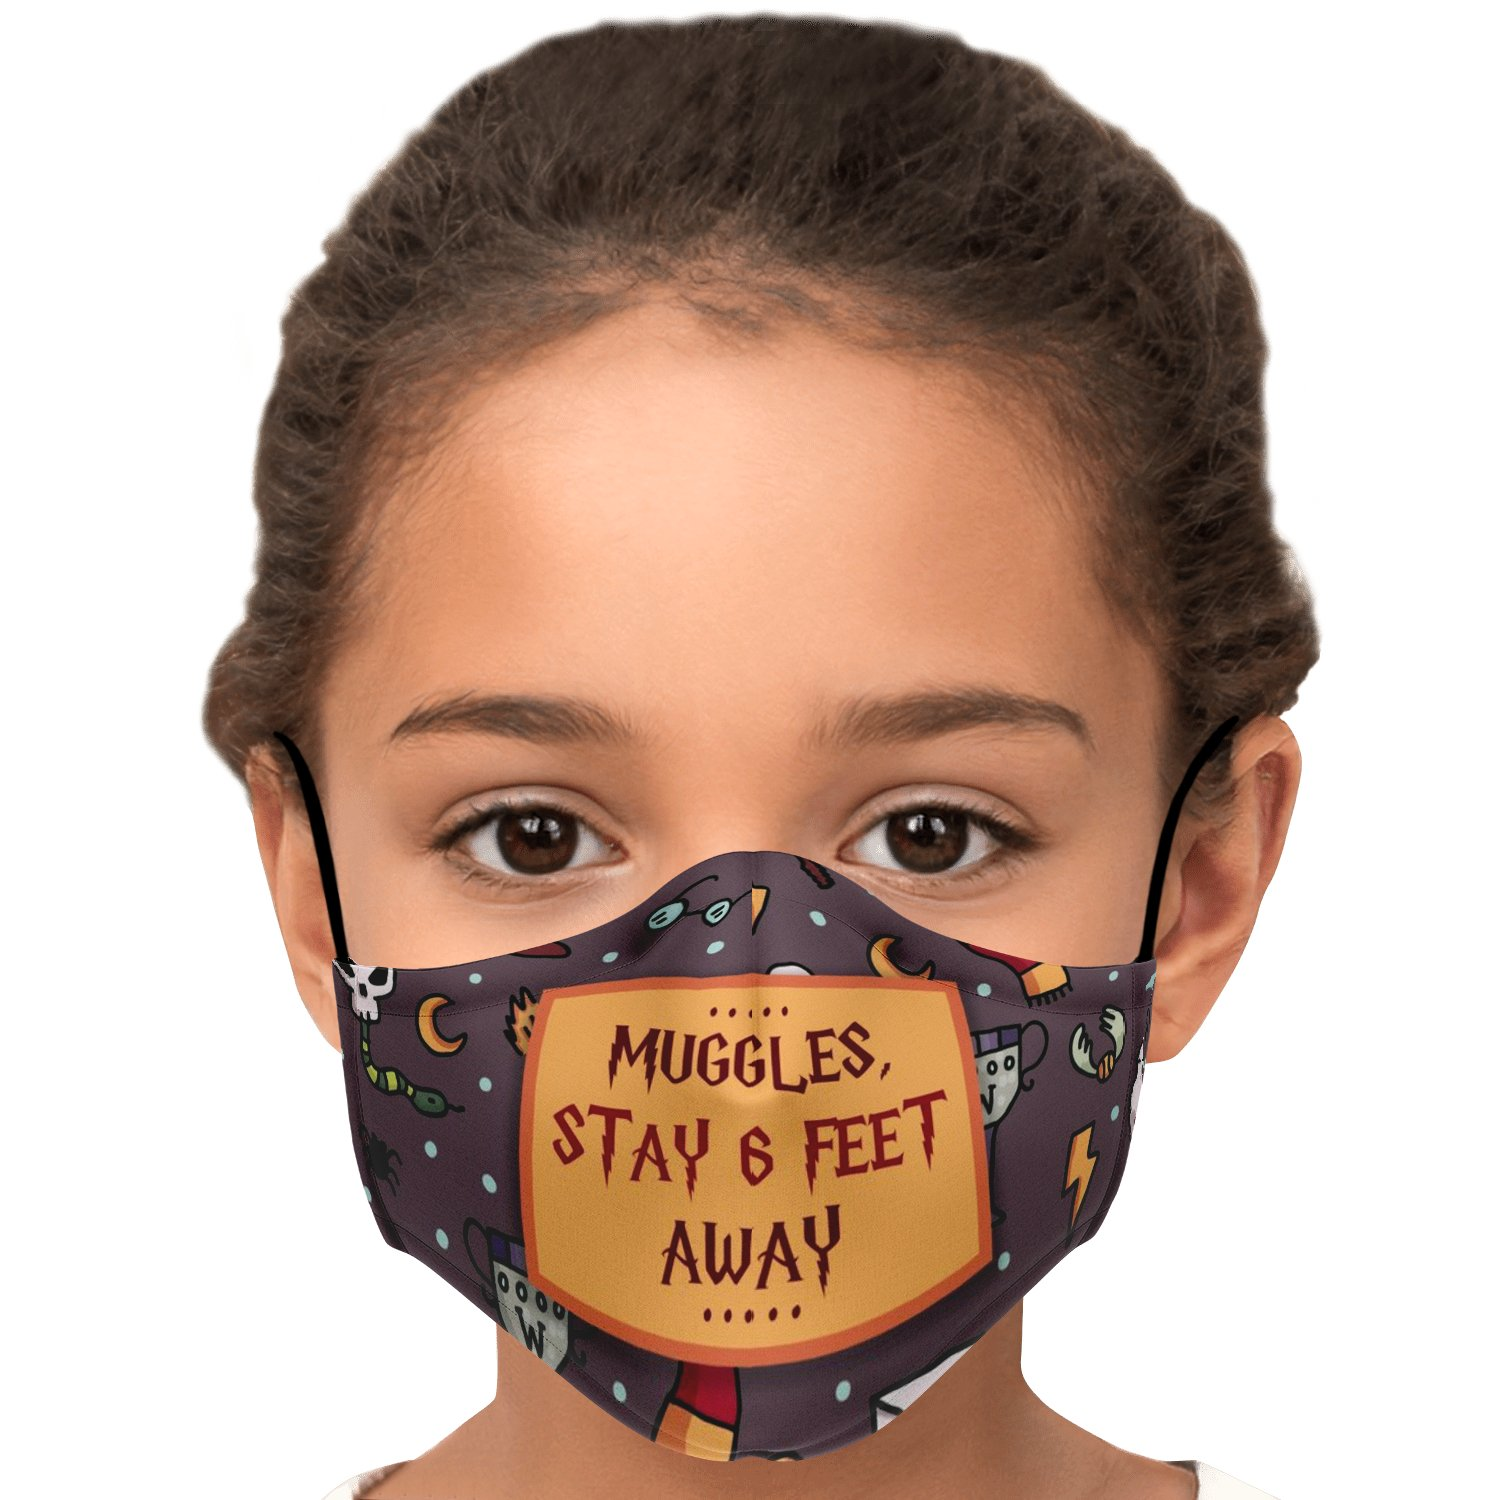 Muggles Stay 6 Feet Away Harry Potter Face Mask 7